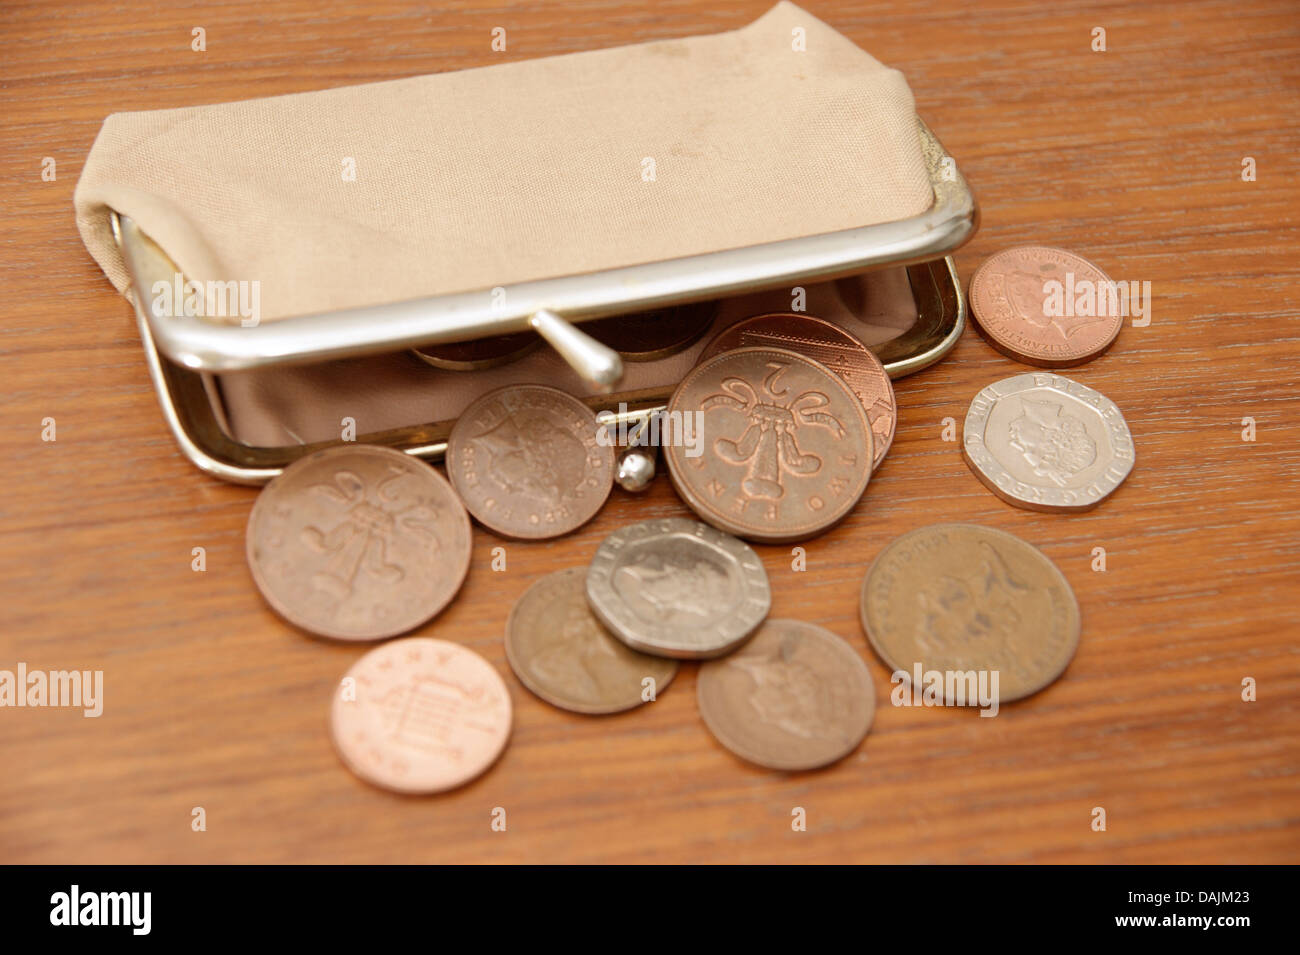 A purse filled with coins (British sterling money) spilling out onto a table - Stock Image